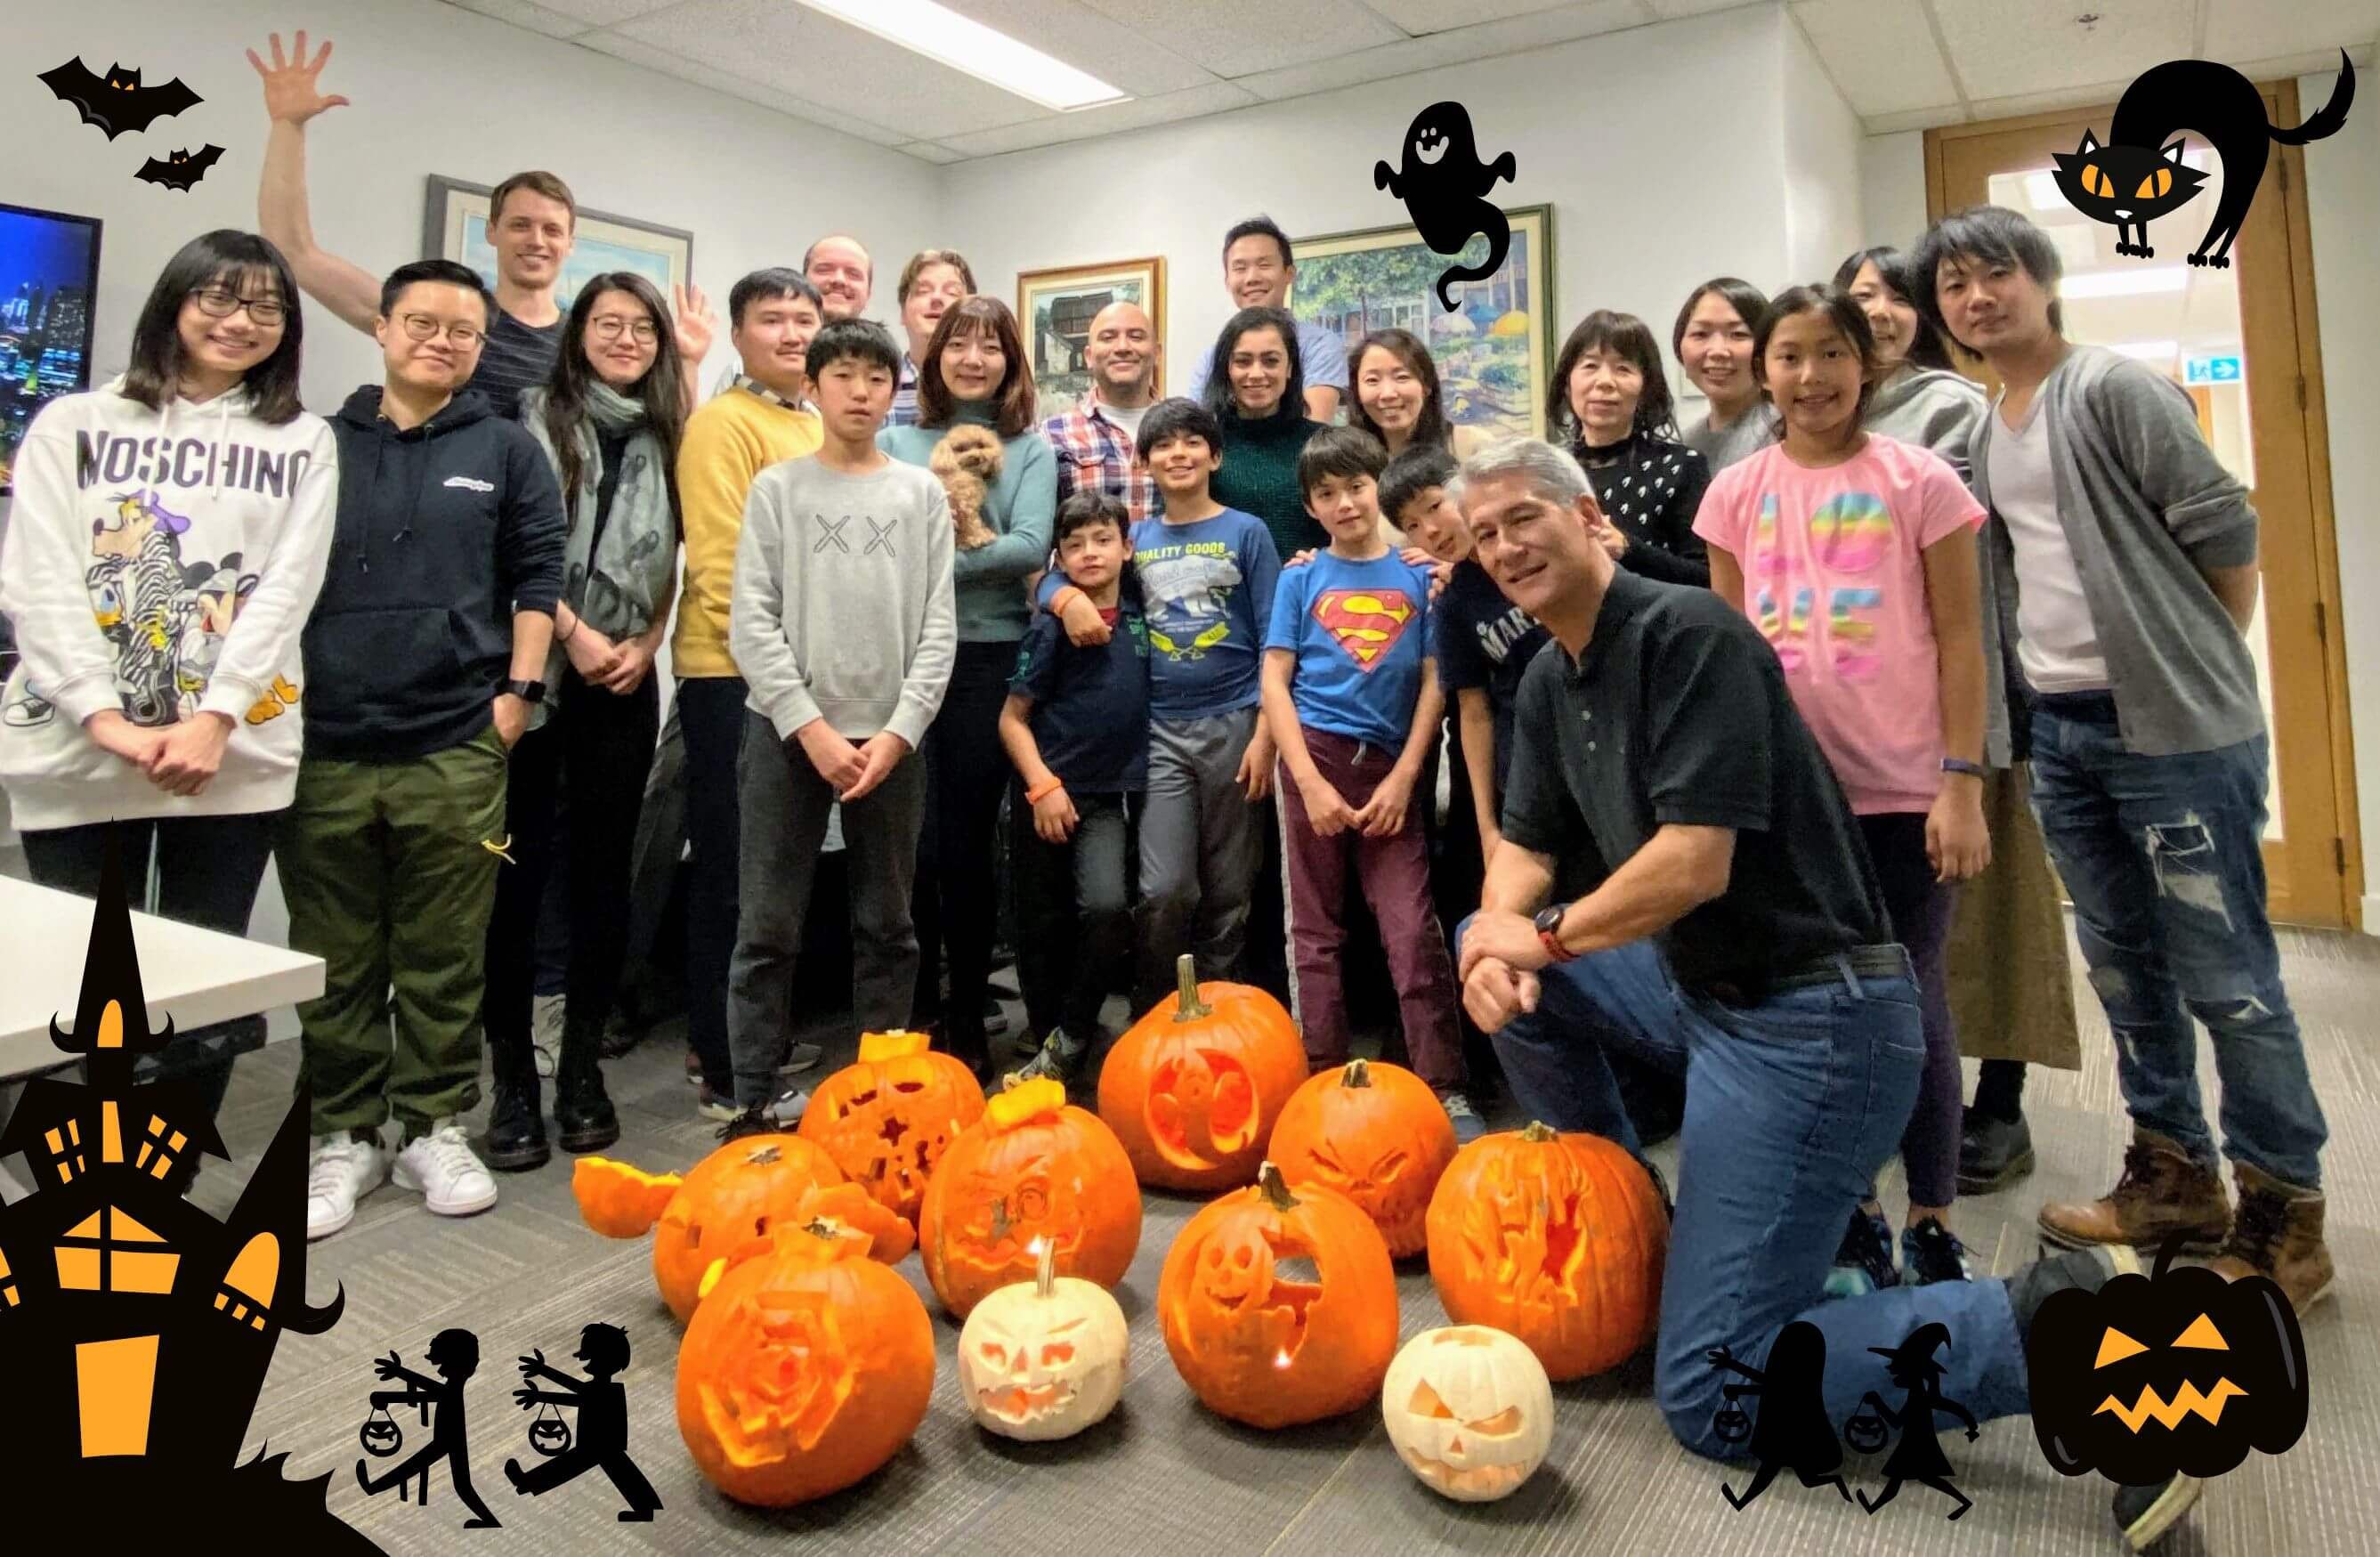 Convergence team and the kids with their pumpkin creations